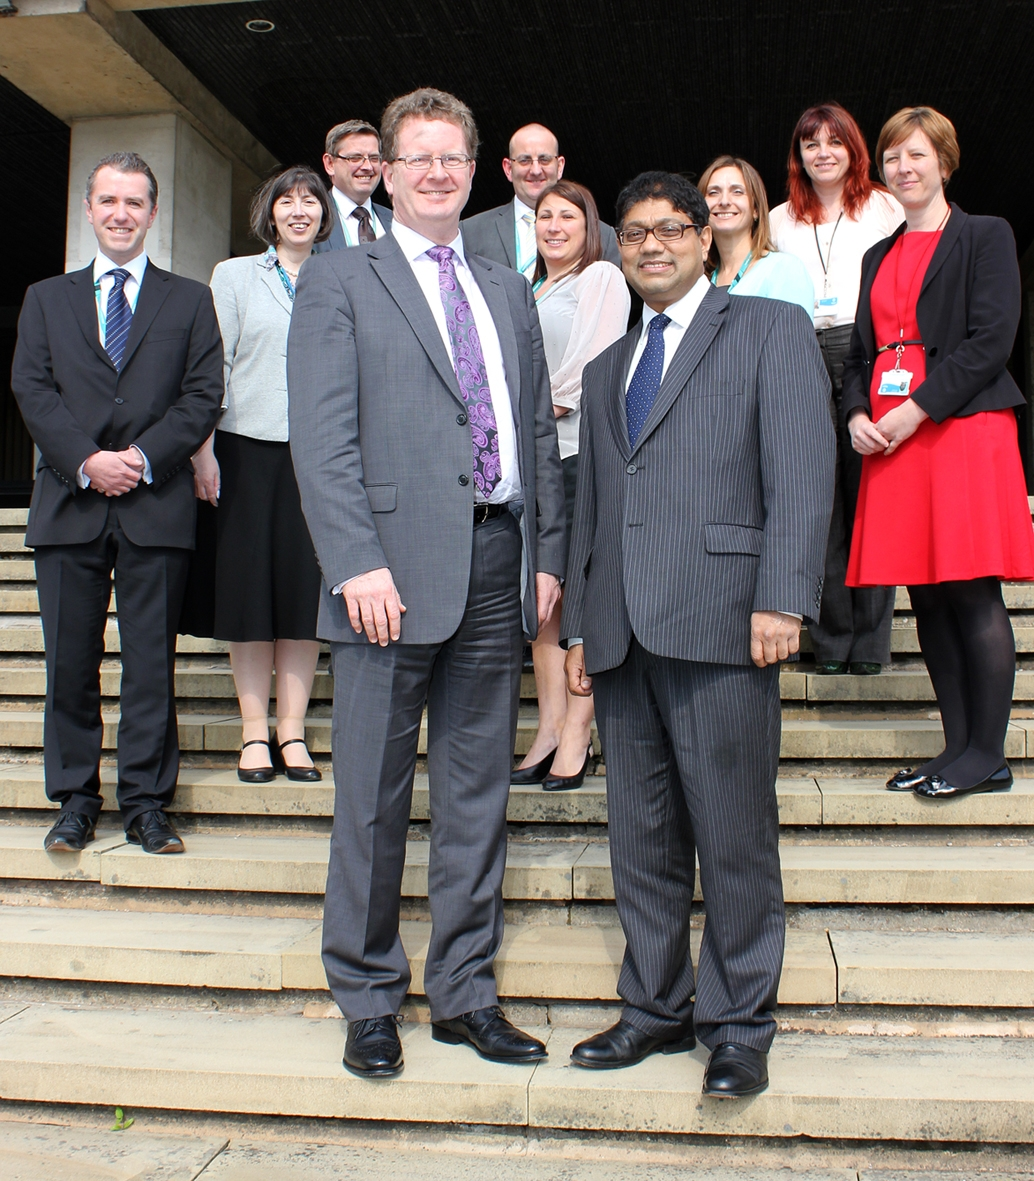 Steven Mair and Councillor Abdul Jabbar celebrate their success at speedy finance